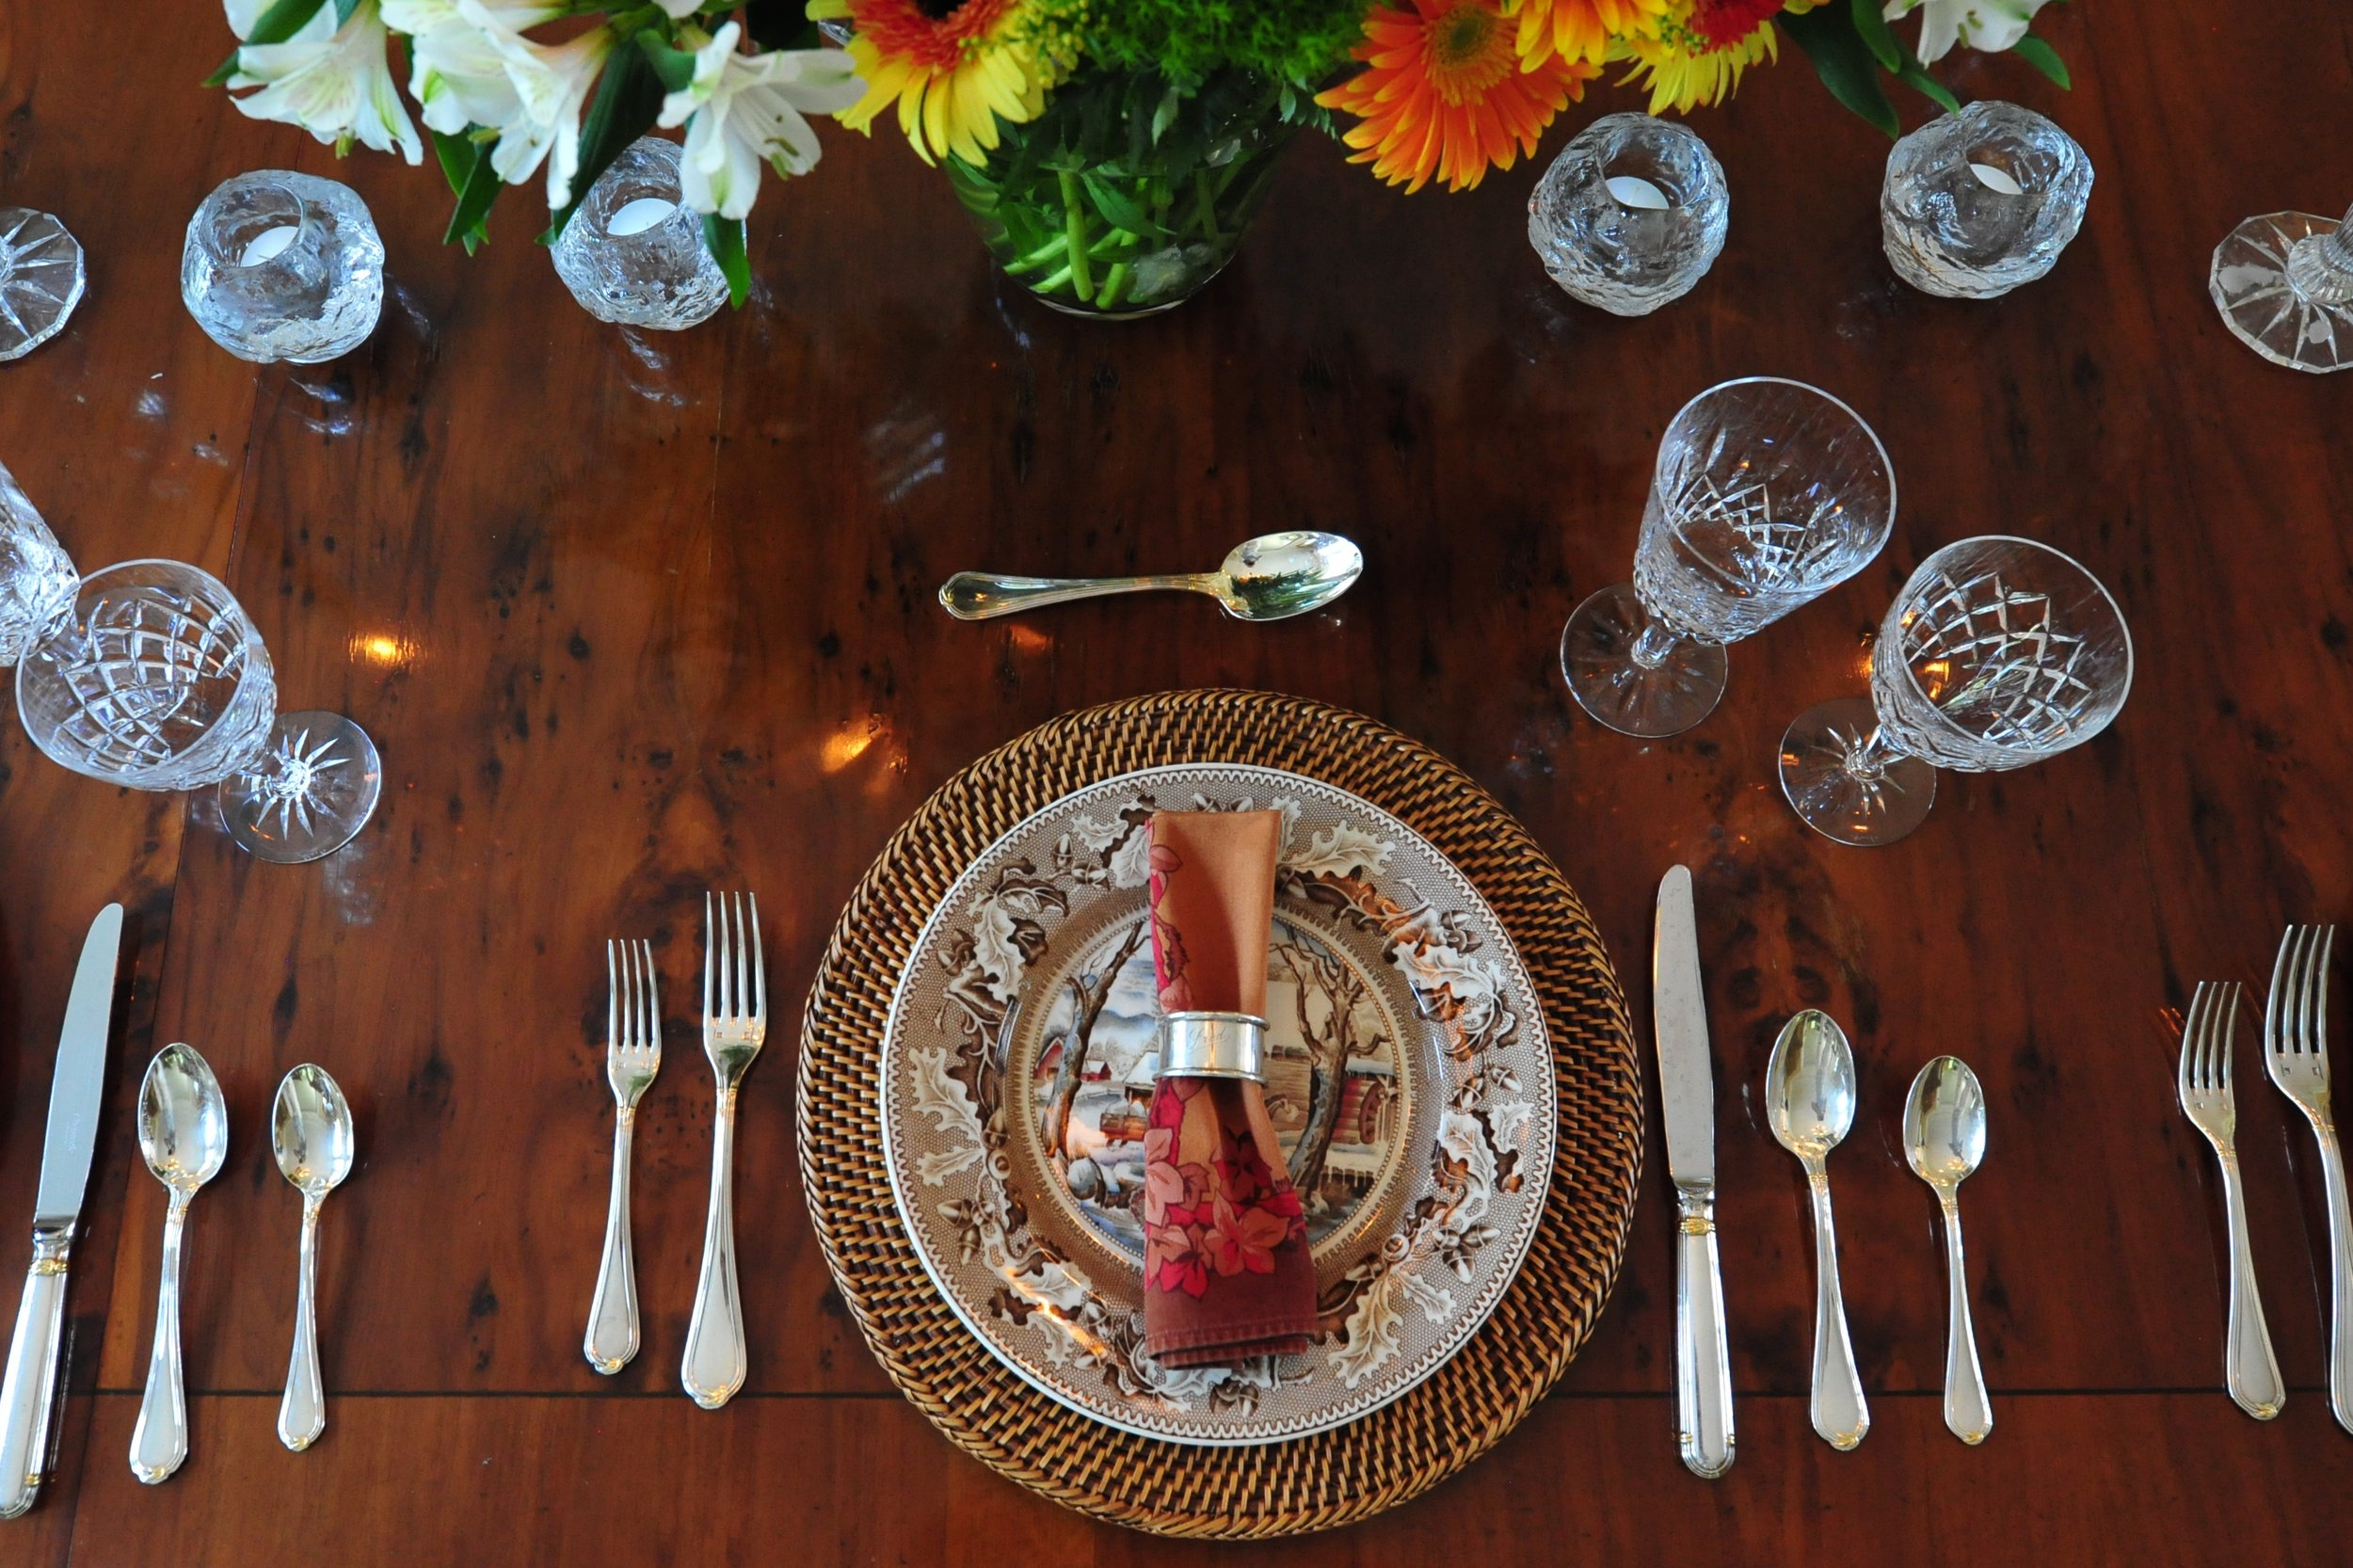 A fall table setting - Photo: Cheryle St Onge